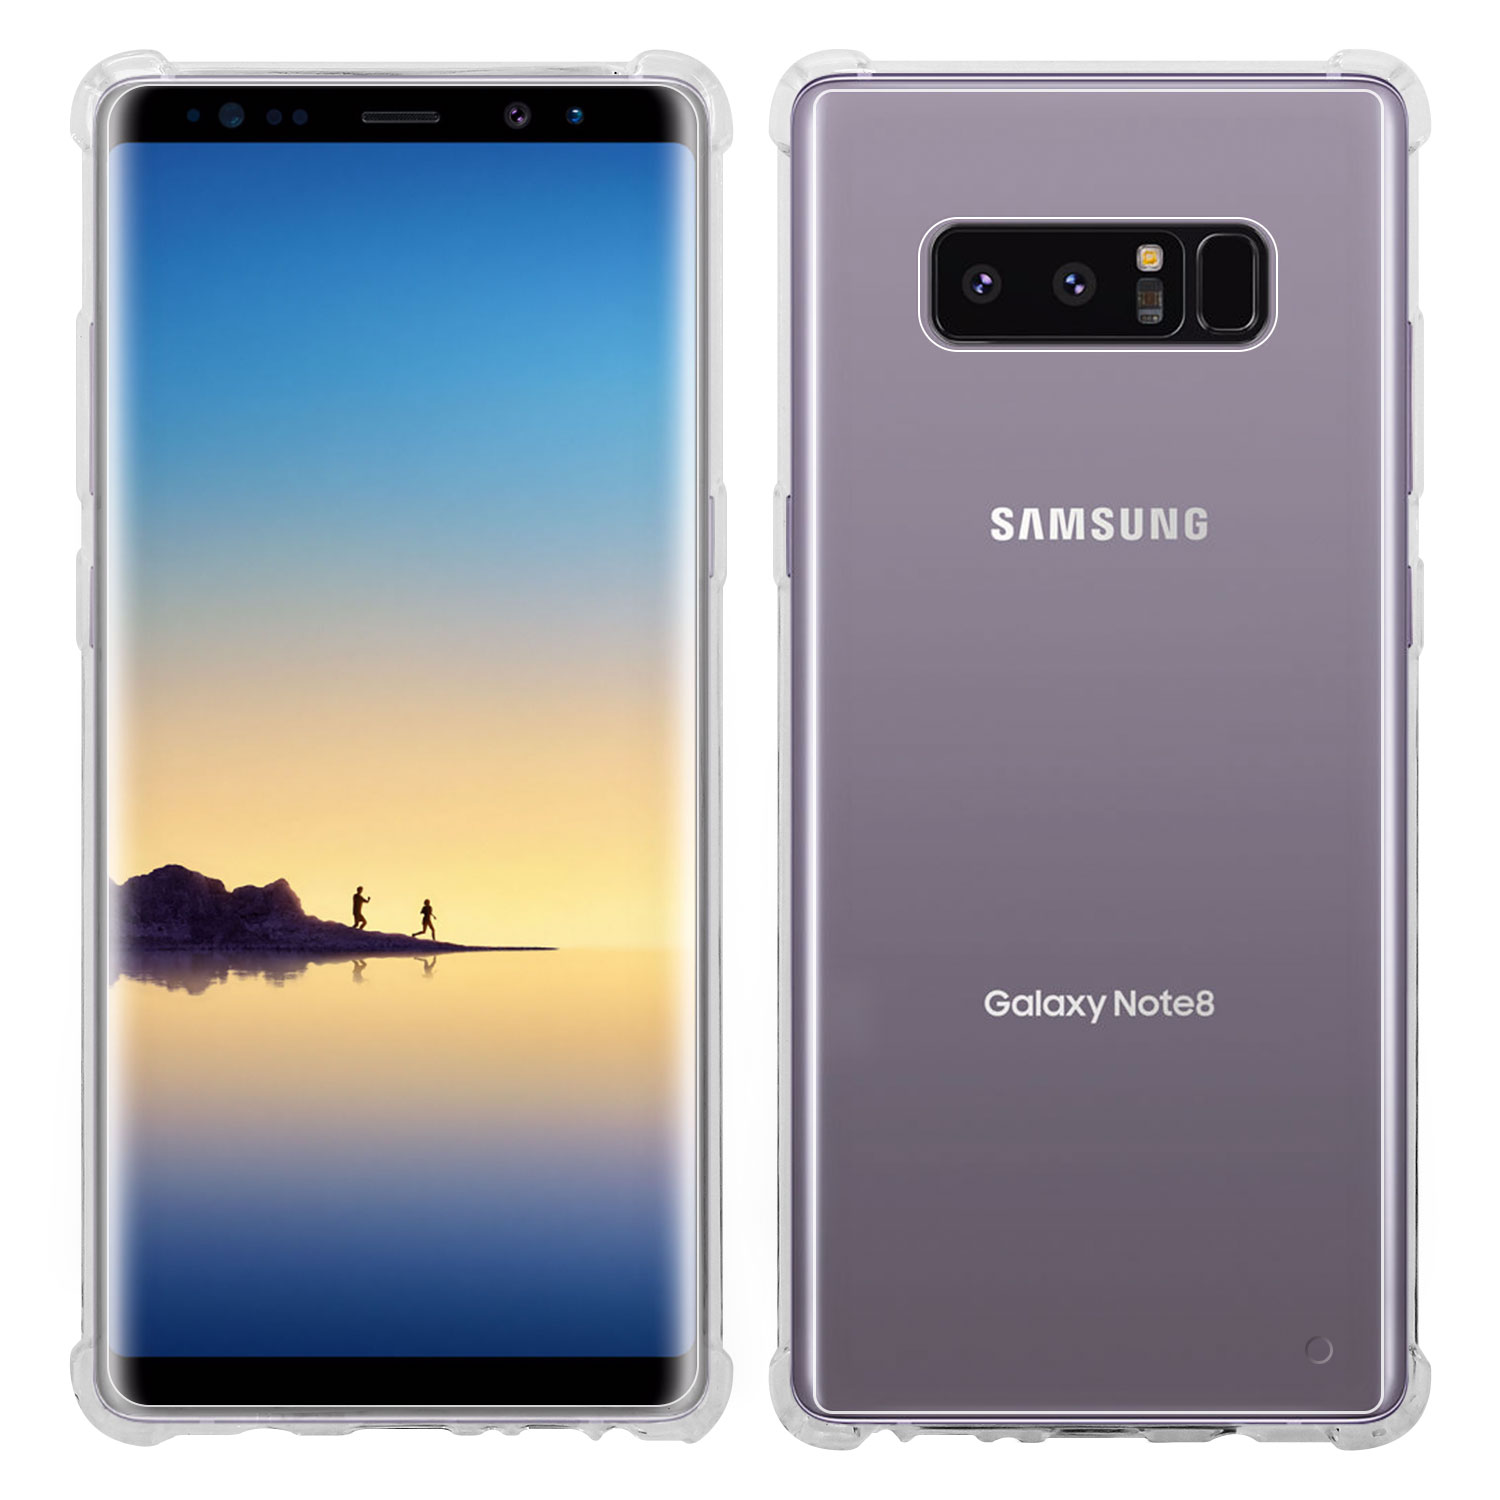 Galaxy Note 8 Case, Transparent Shockproof and Scratch Resistant Case for Samsung Note 8 by Cellet - Clear